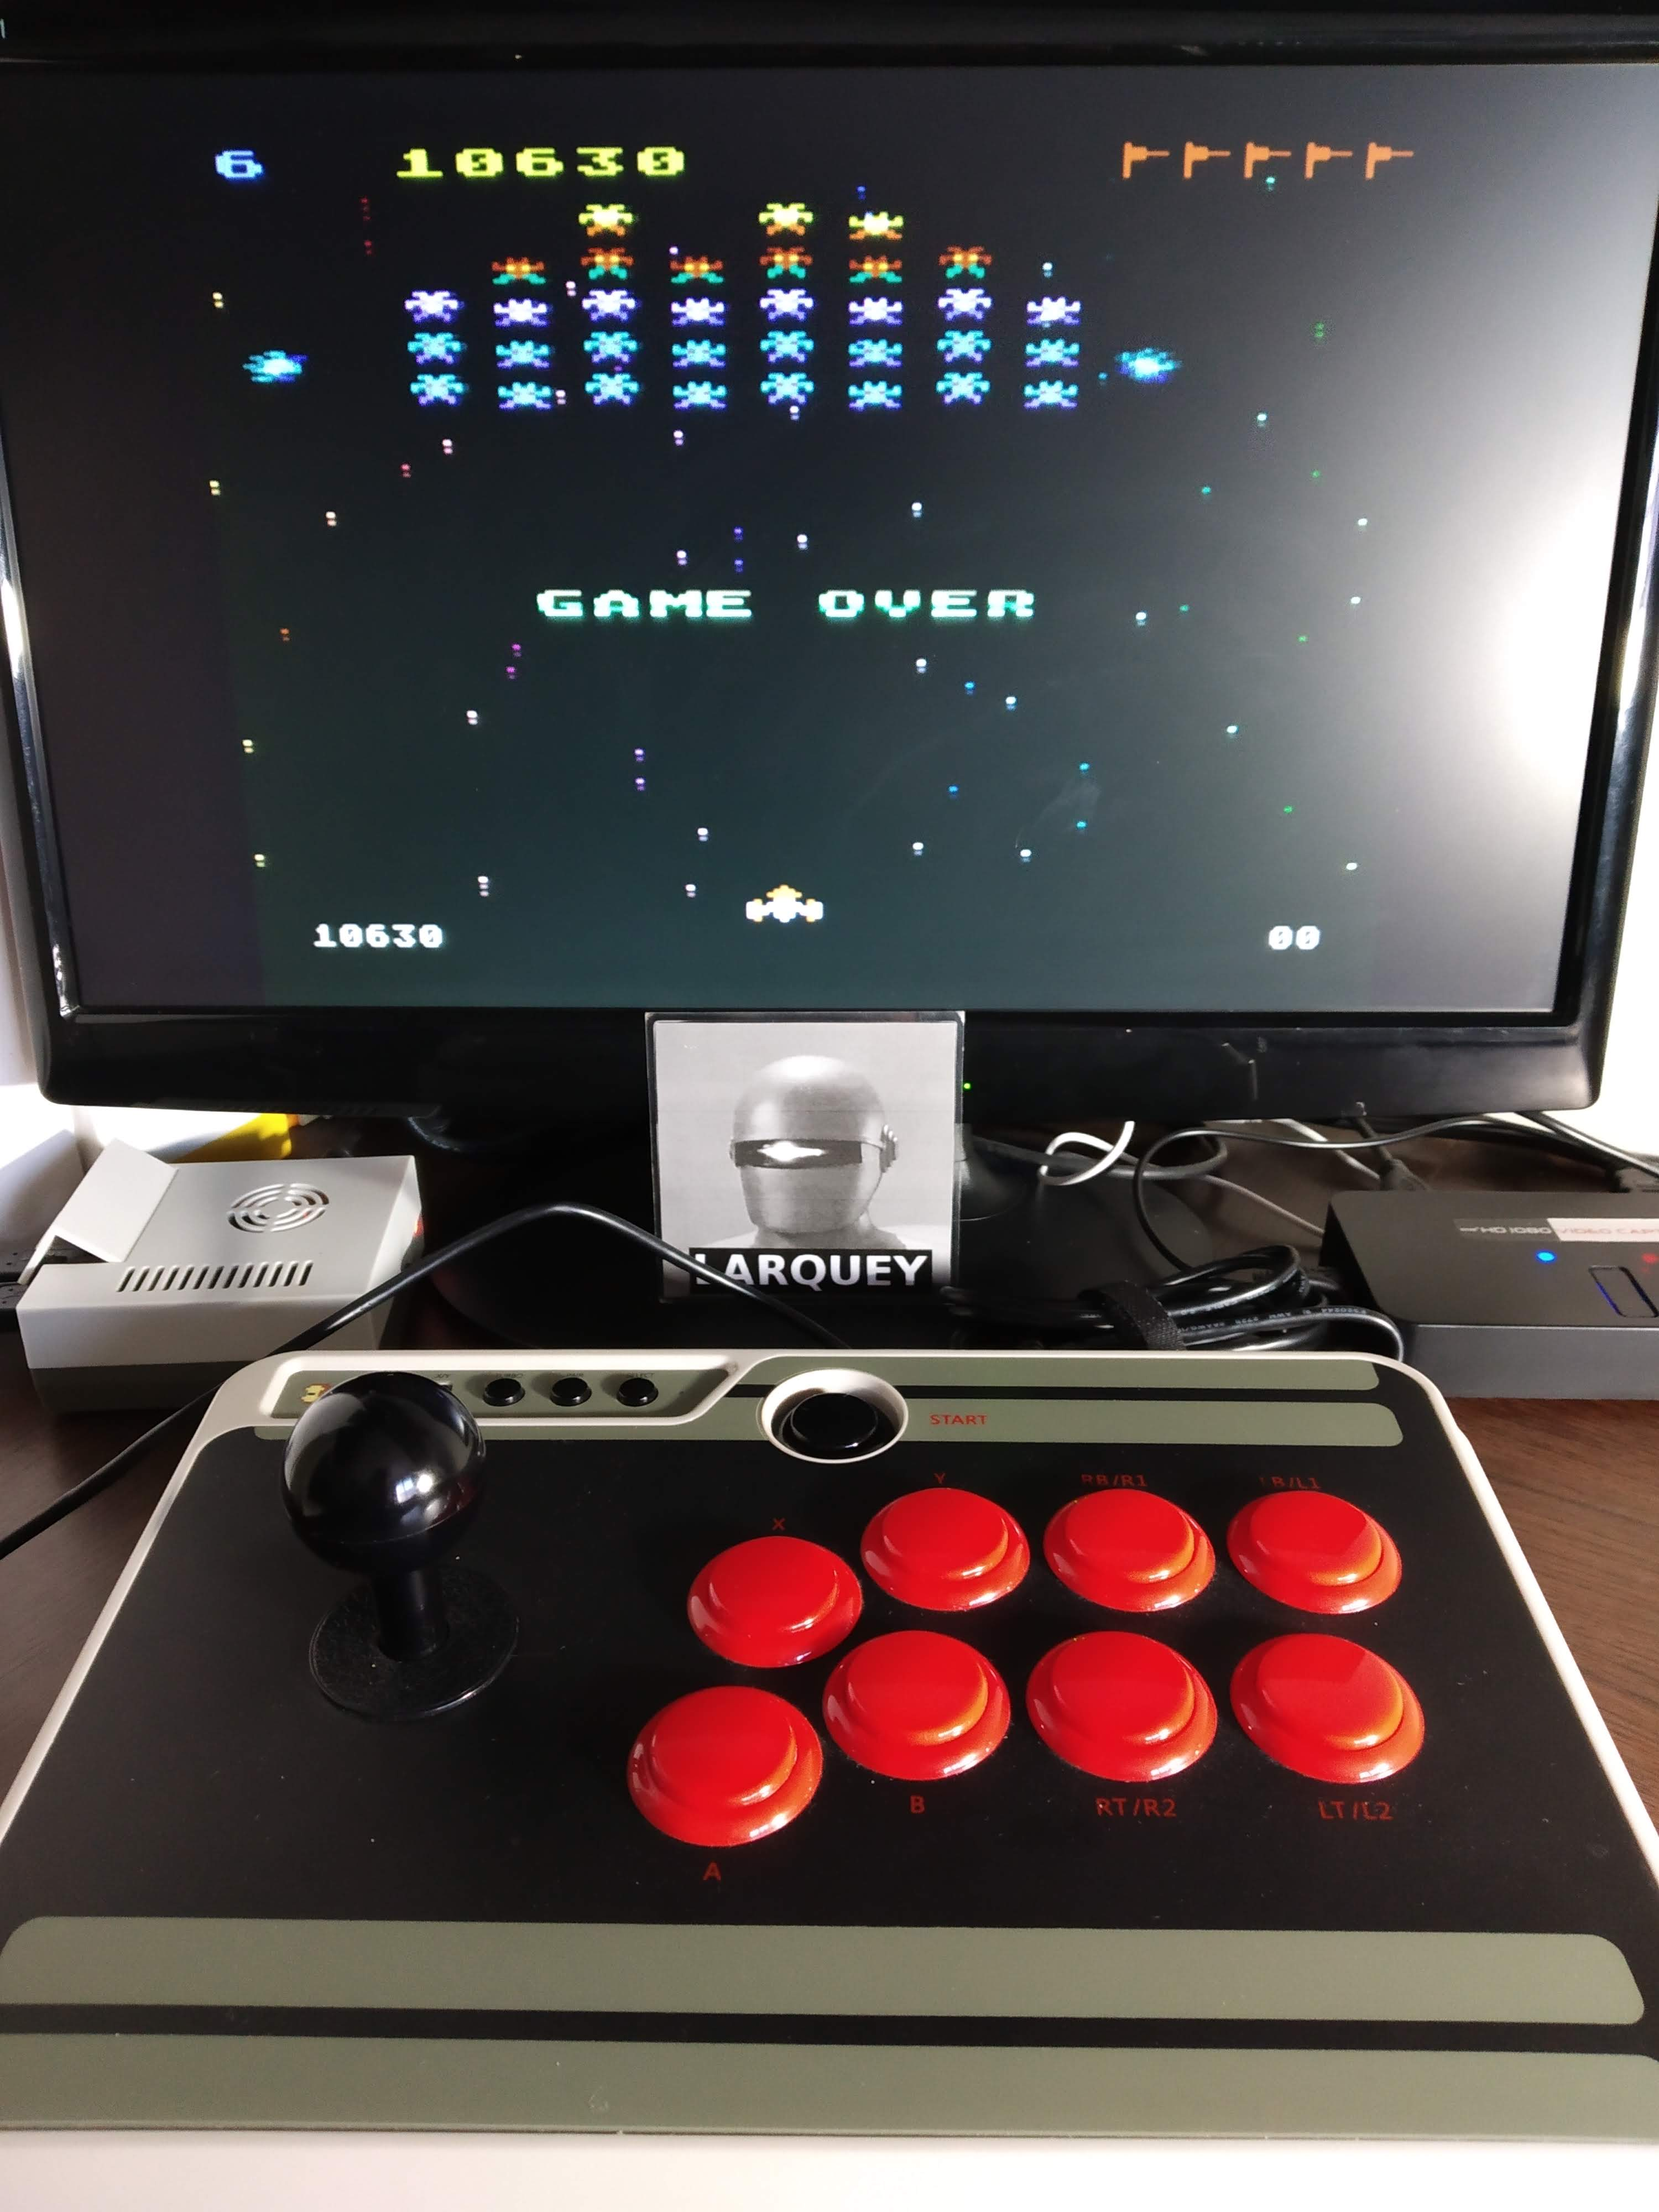 Galaxian: Skill Level 6 10,630 points